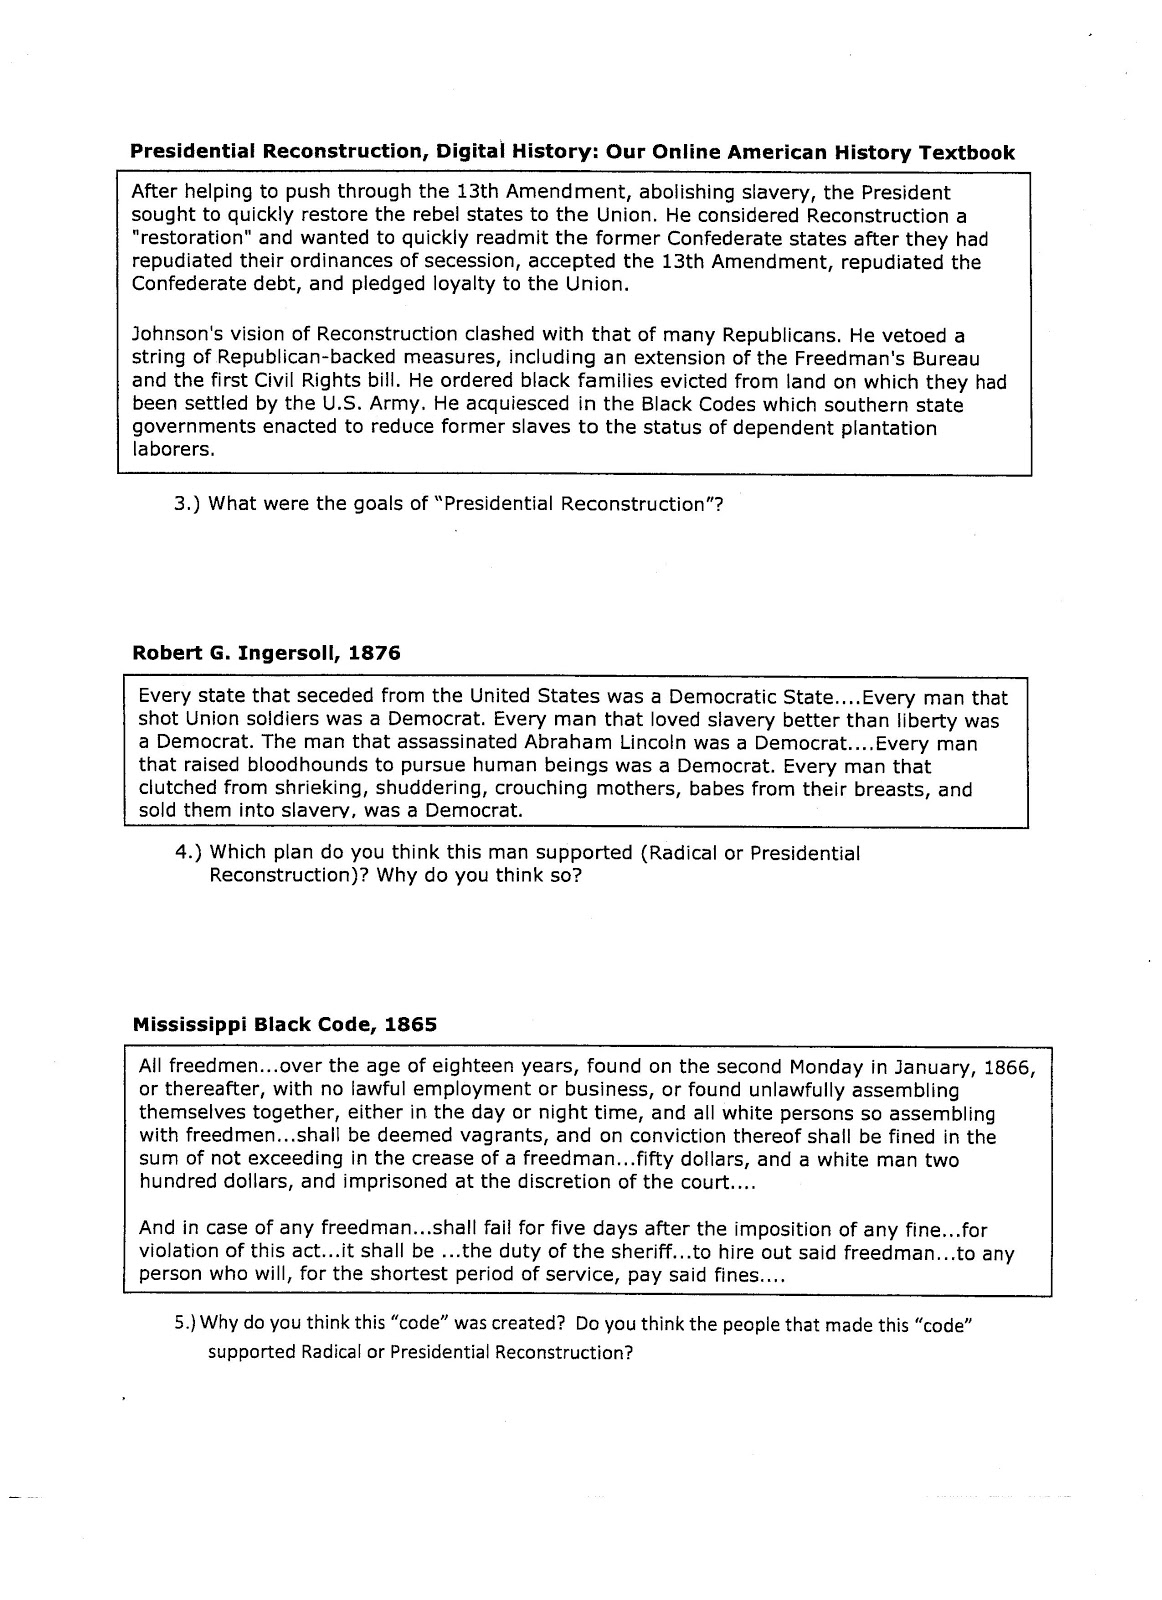 Ethos Pathos Logos Worksheet Read Write Think Essay